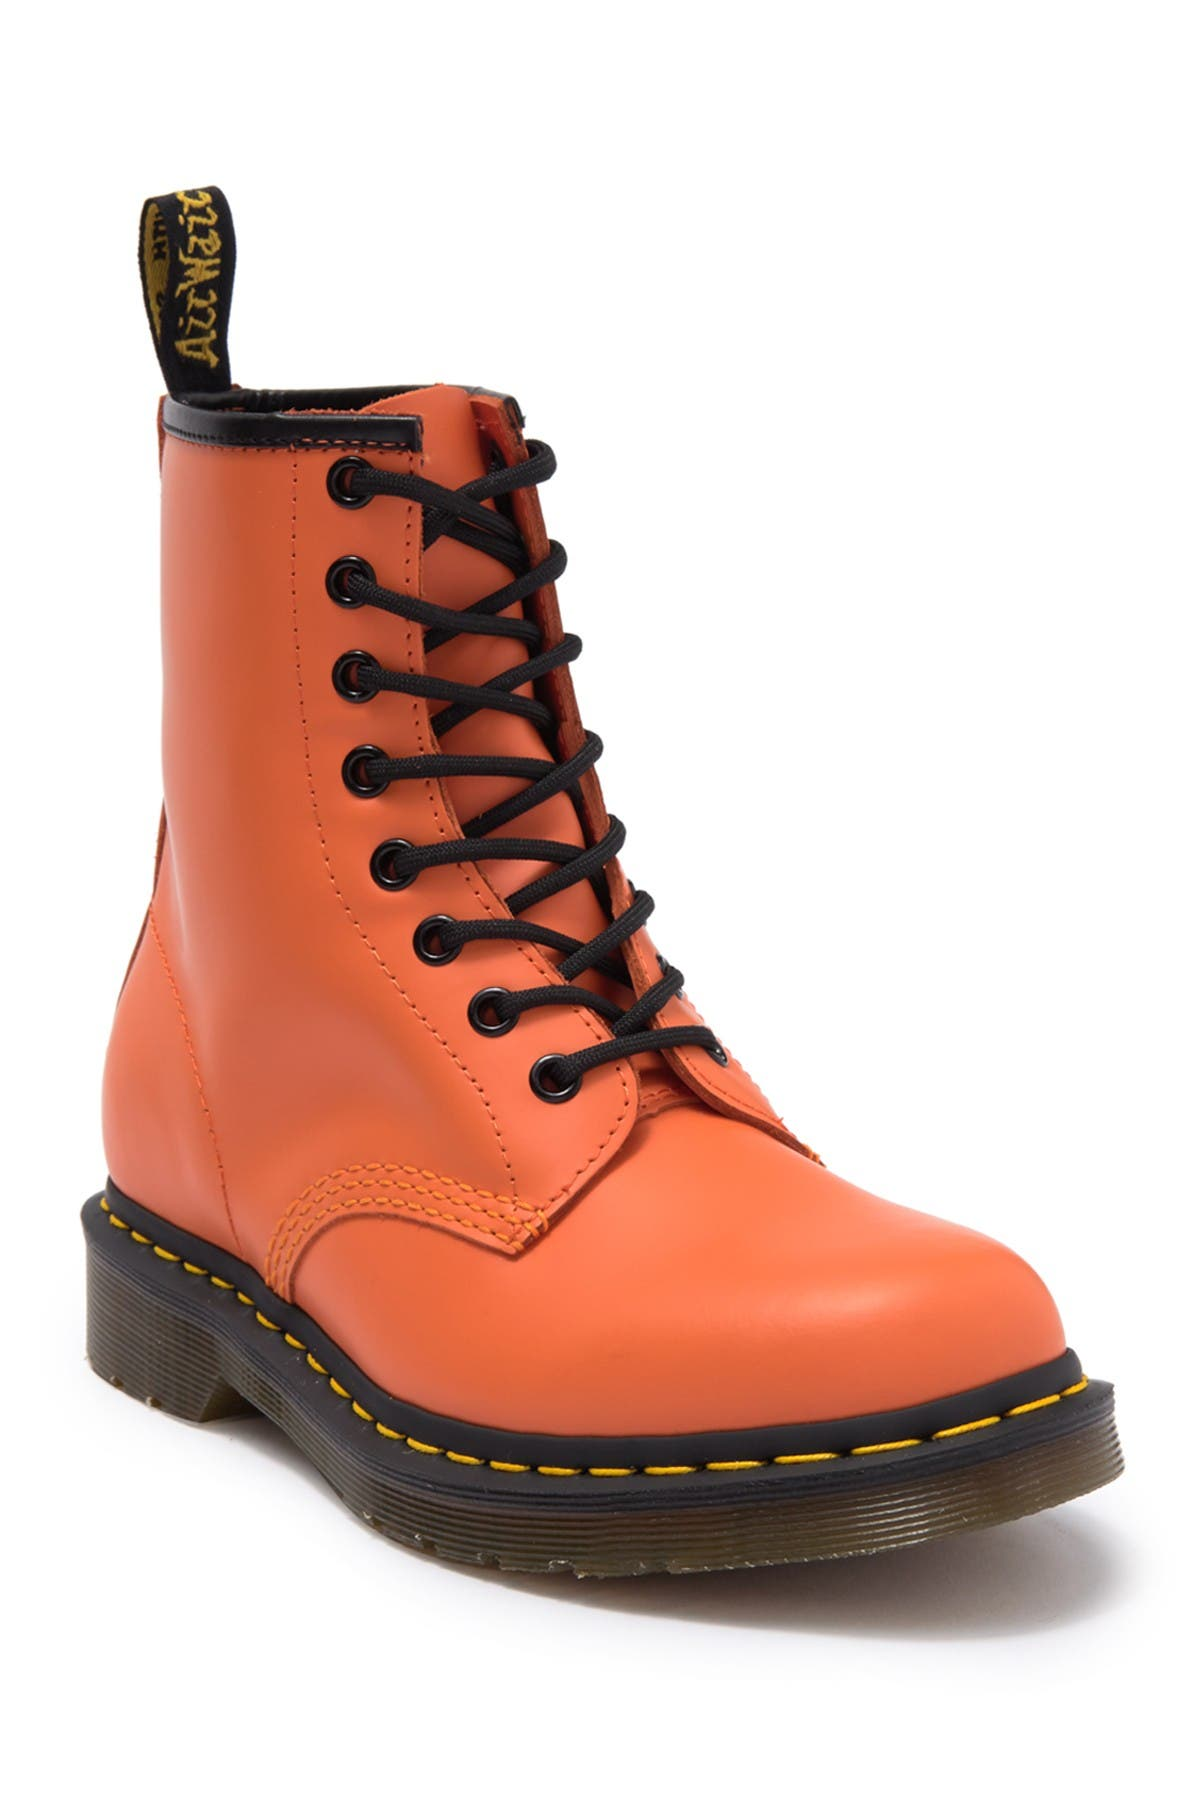 Image of Dr. Martens 1460 W Lace Up Boots